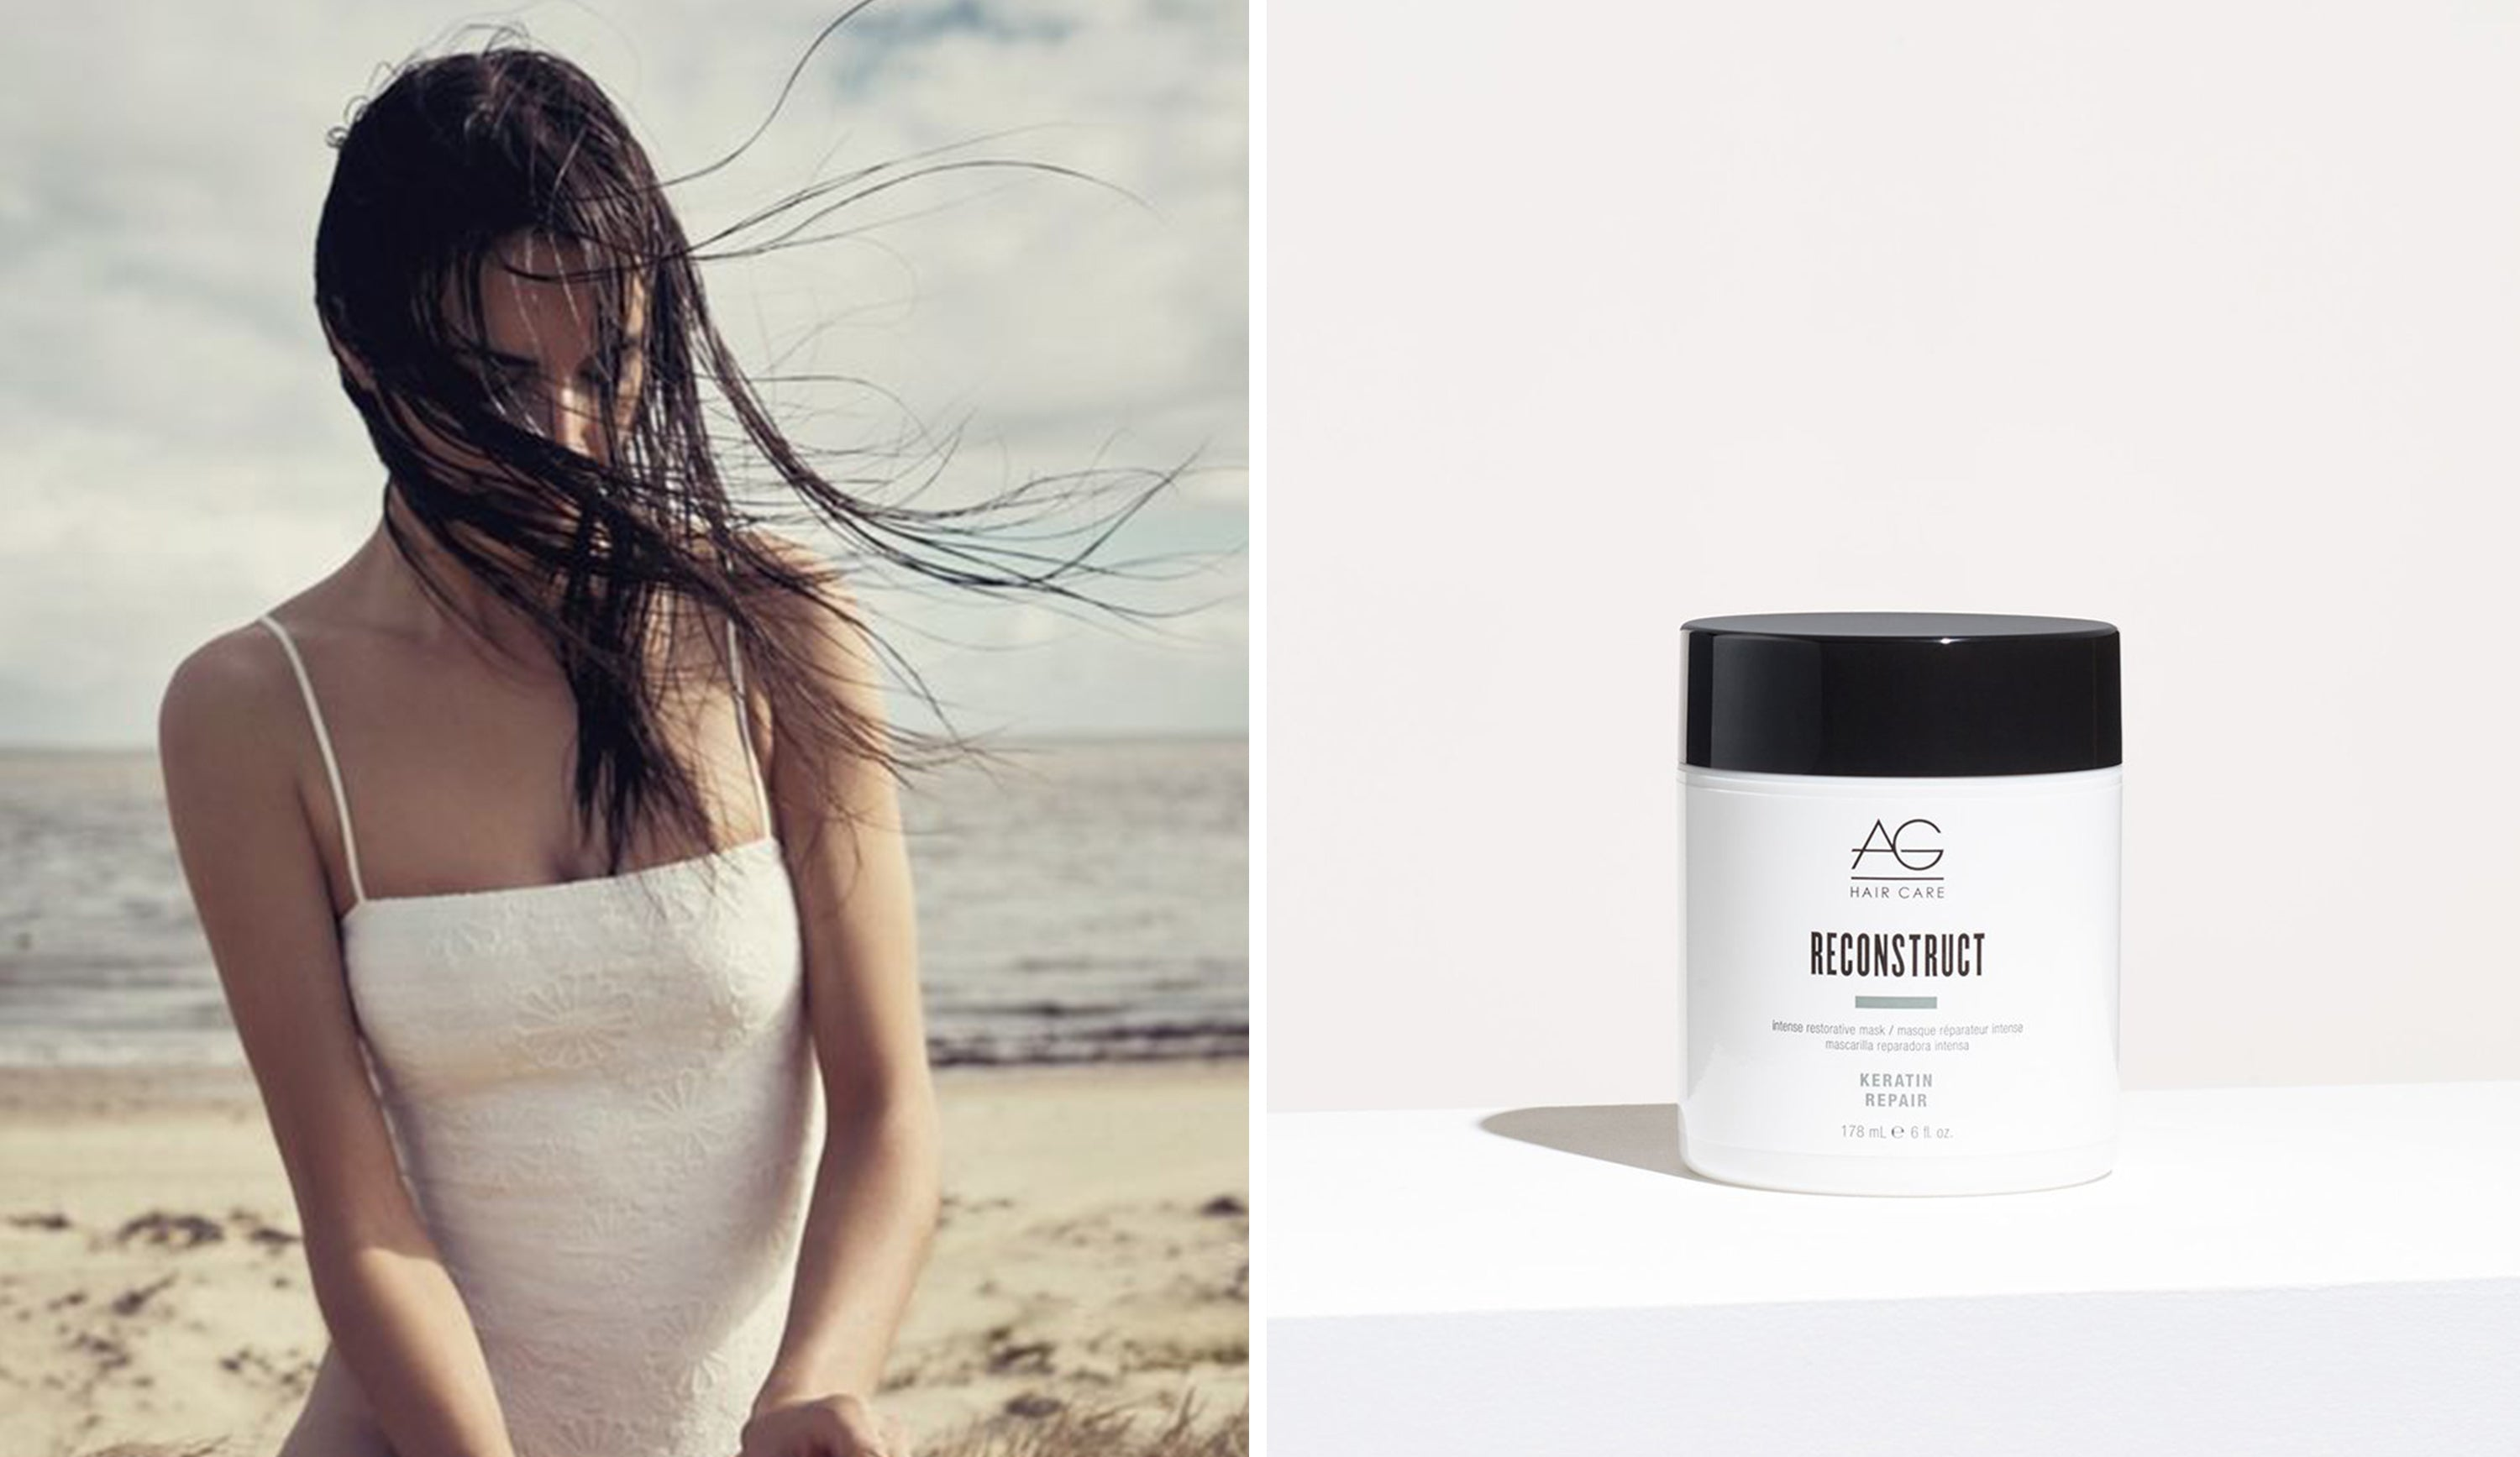 Keratin hair mask for damaged hair AG Reconstruct